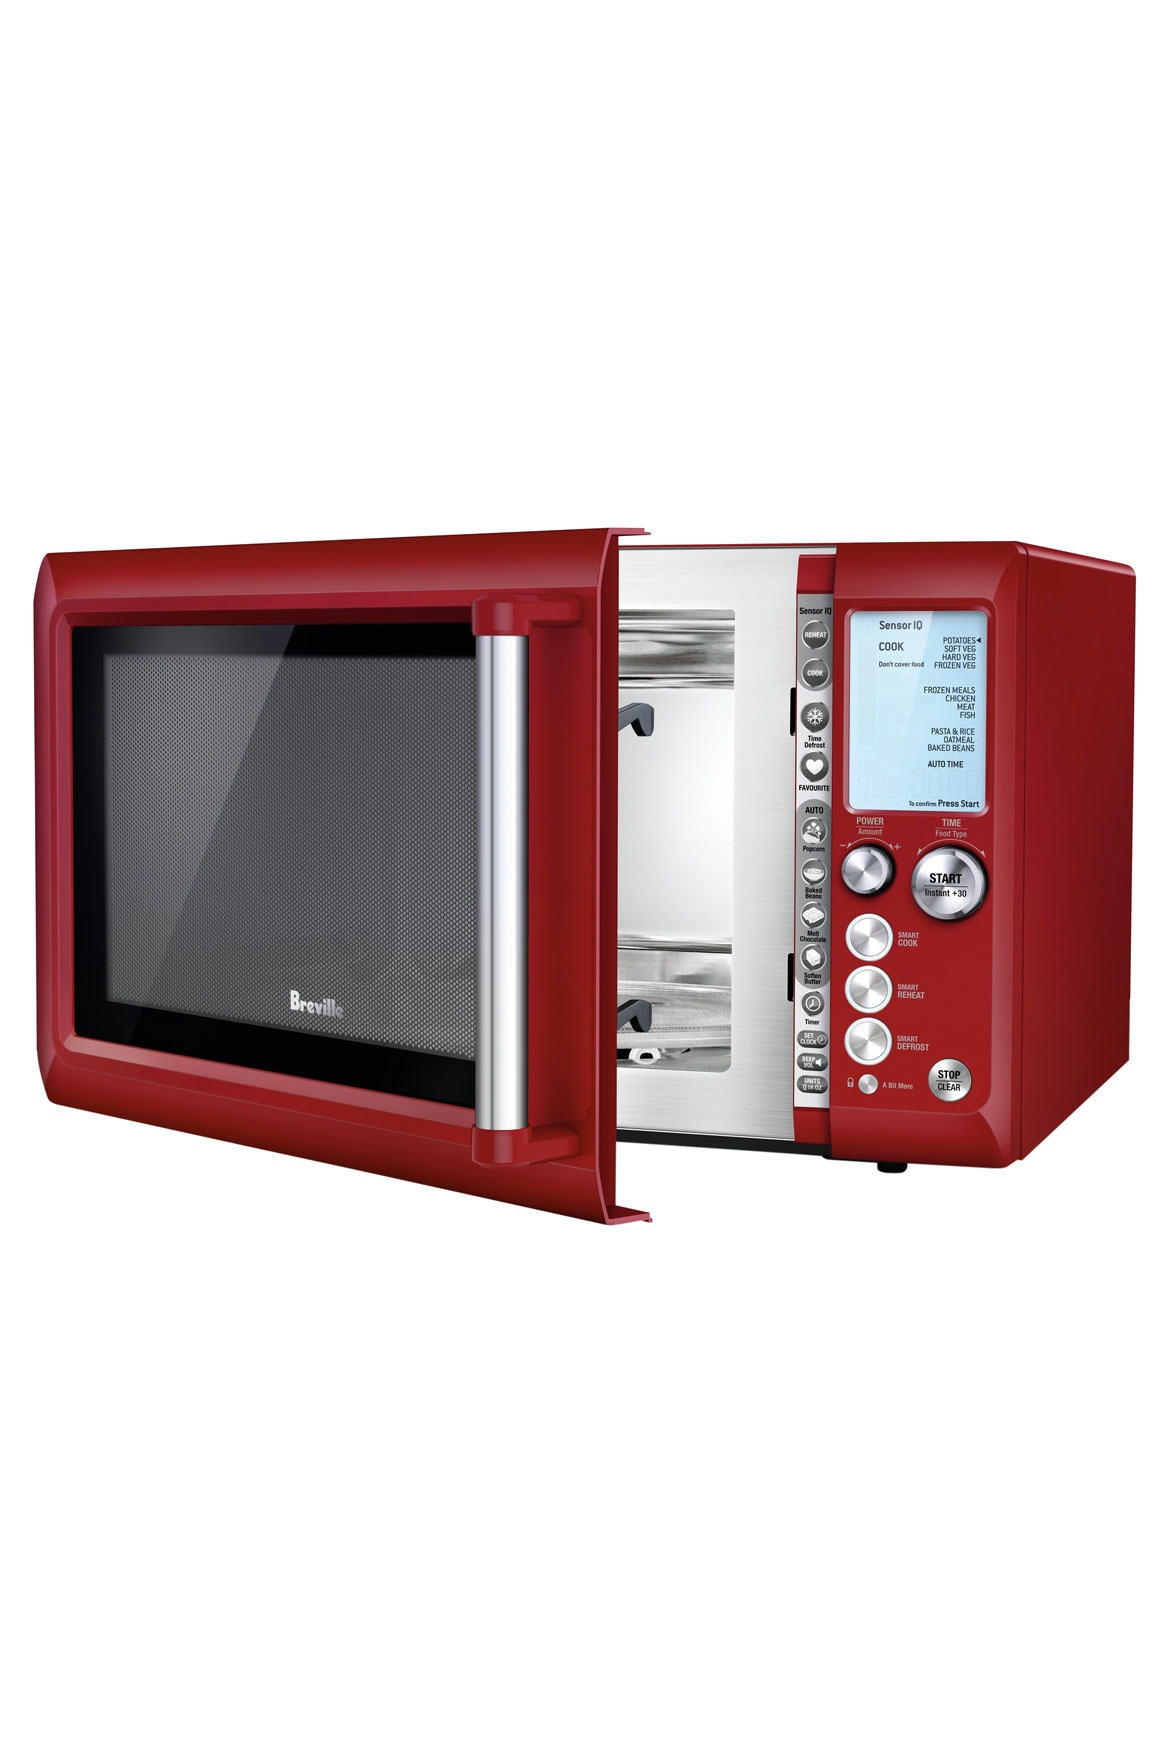 Breville The Quick Touch Microwave Bmo735crn Myer Online